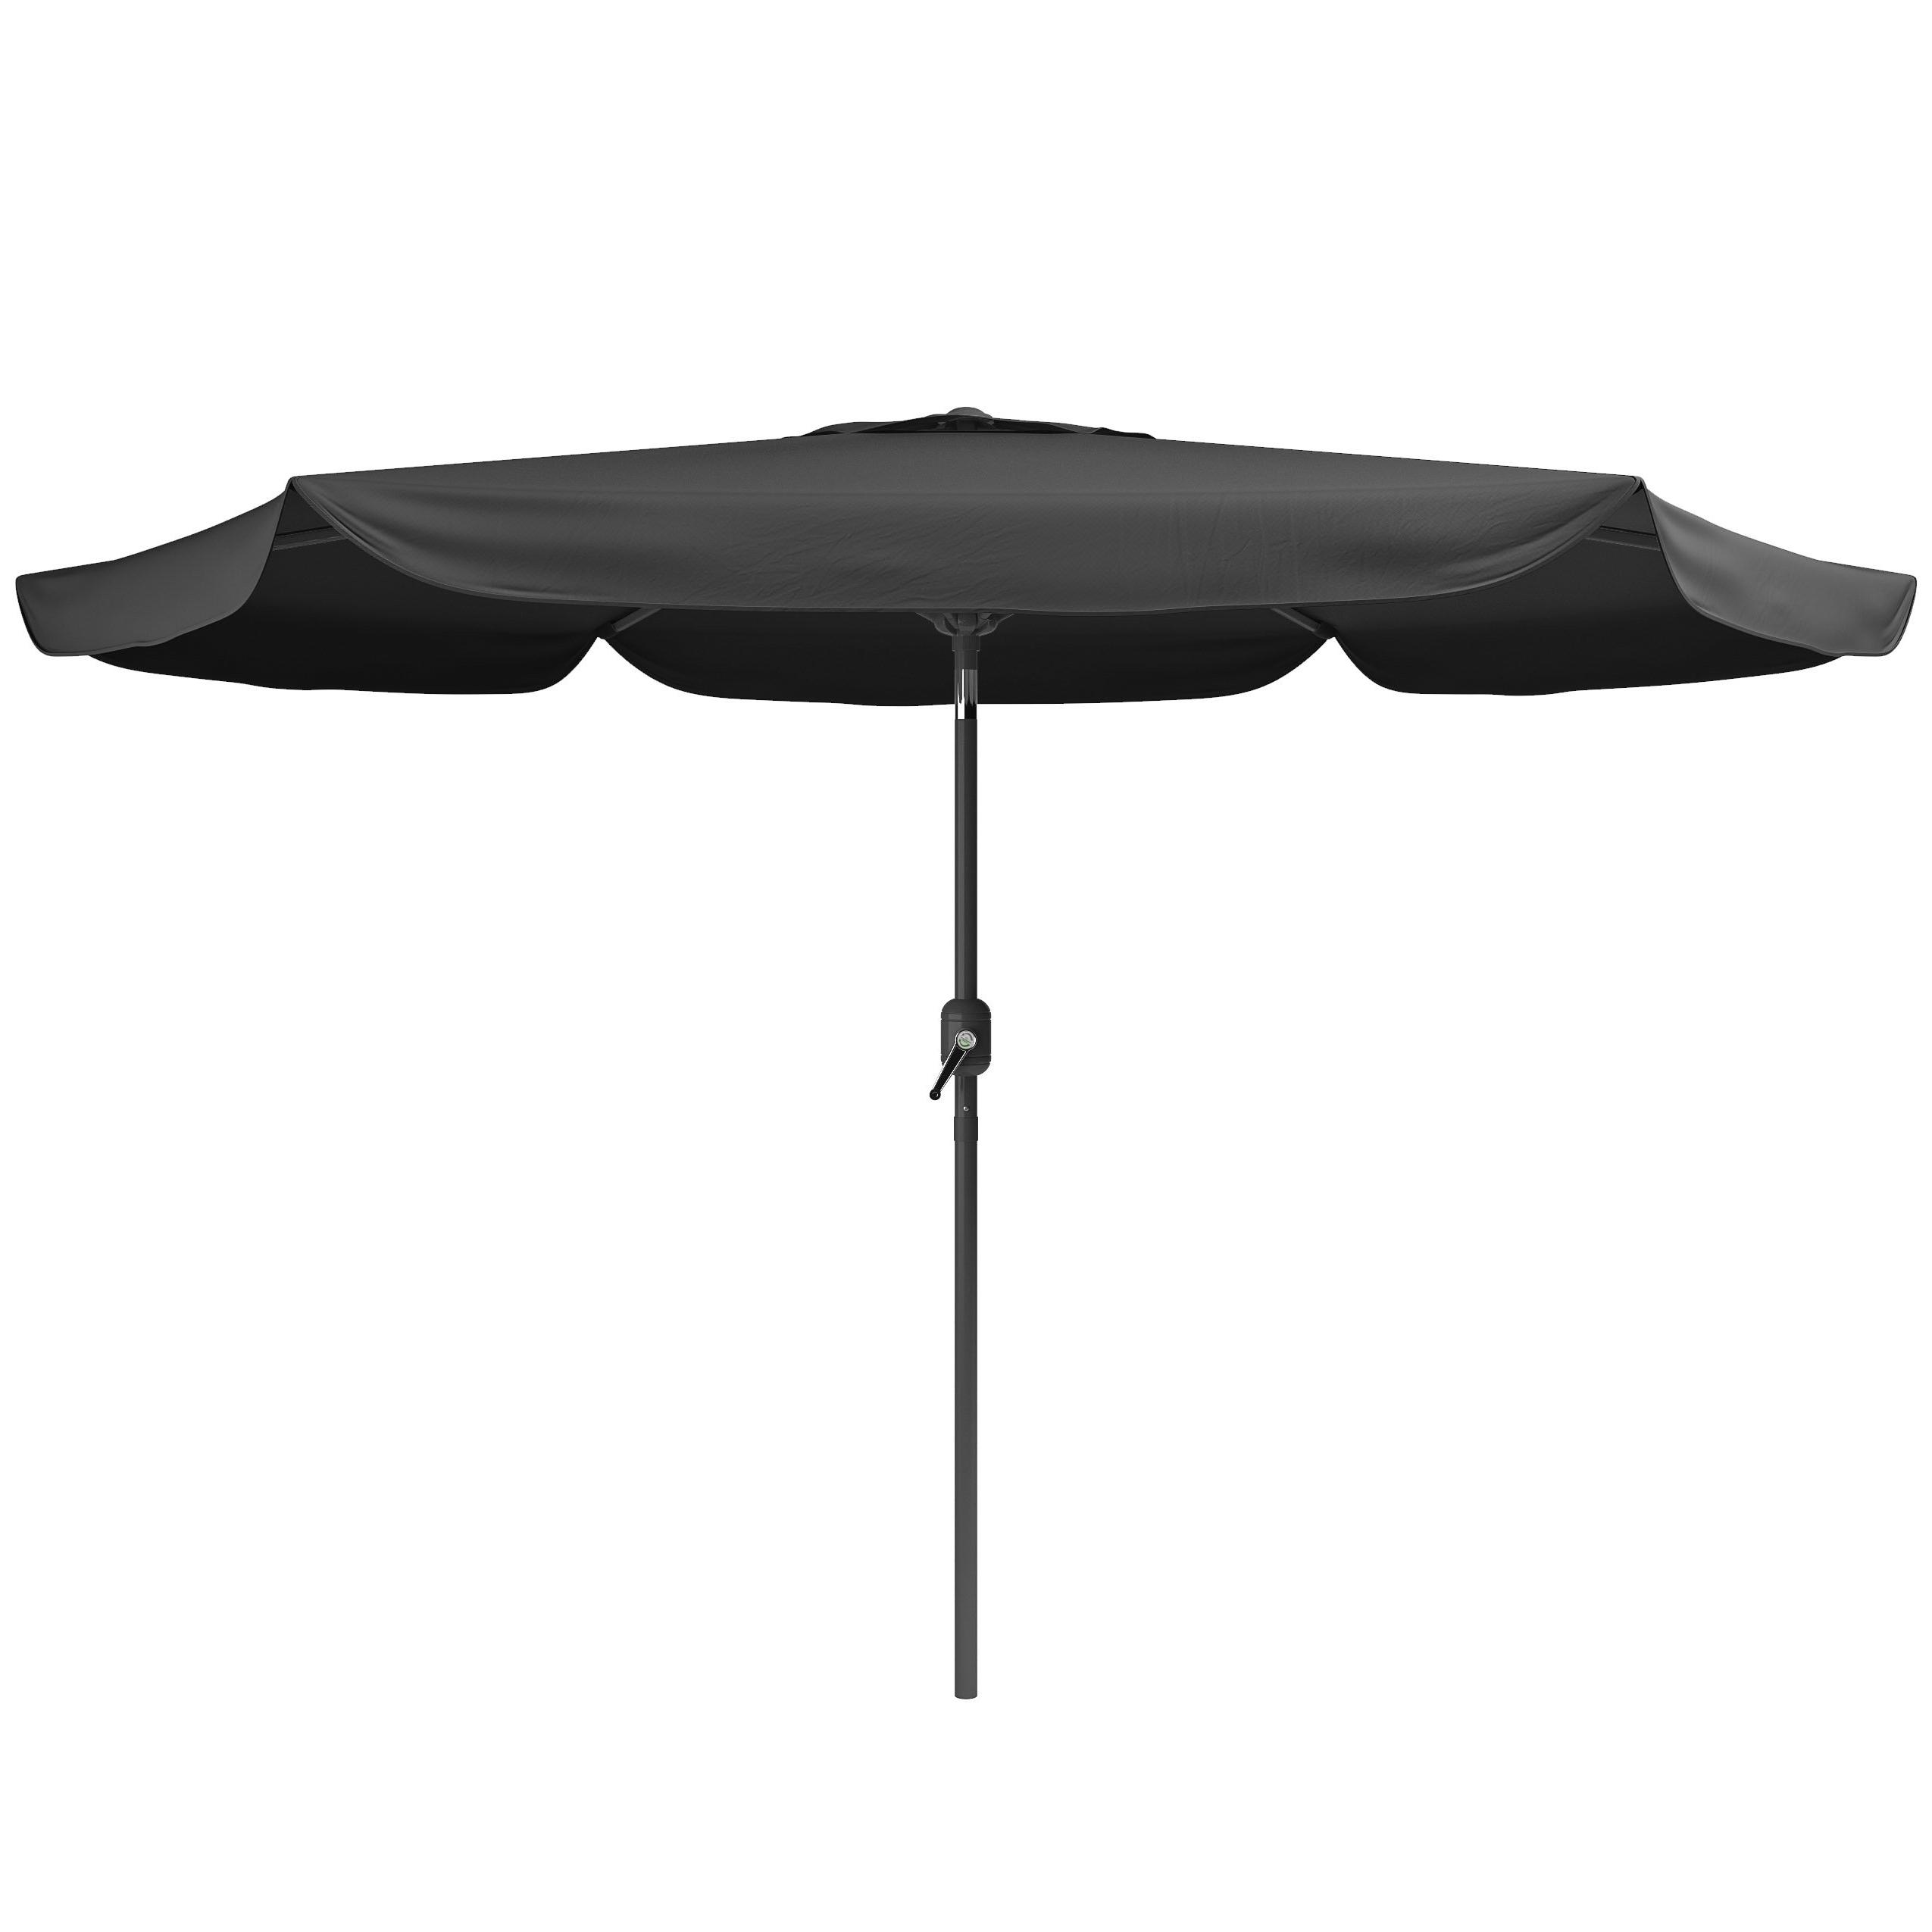 Dcor Design Corliving 10' Market Umbrella & Reviews (Gallery 5 of 20)